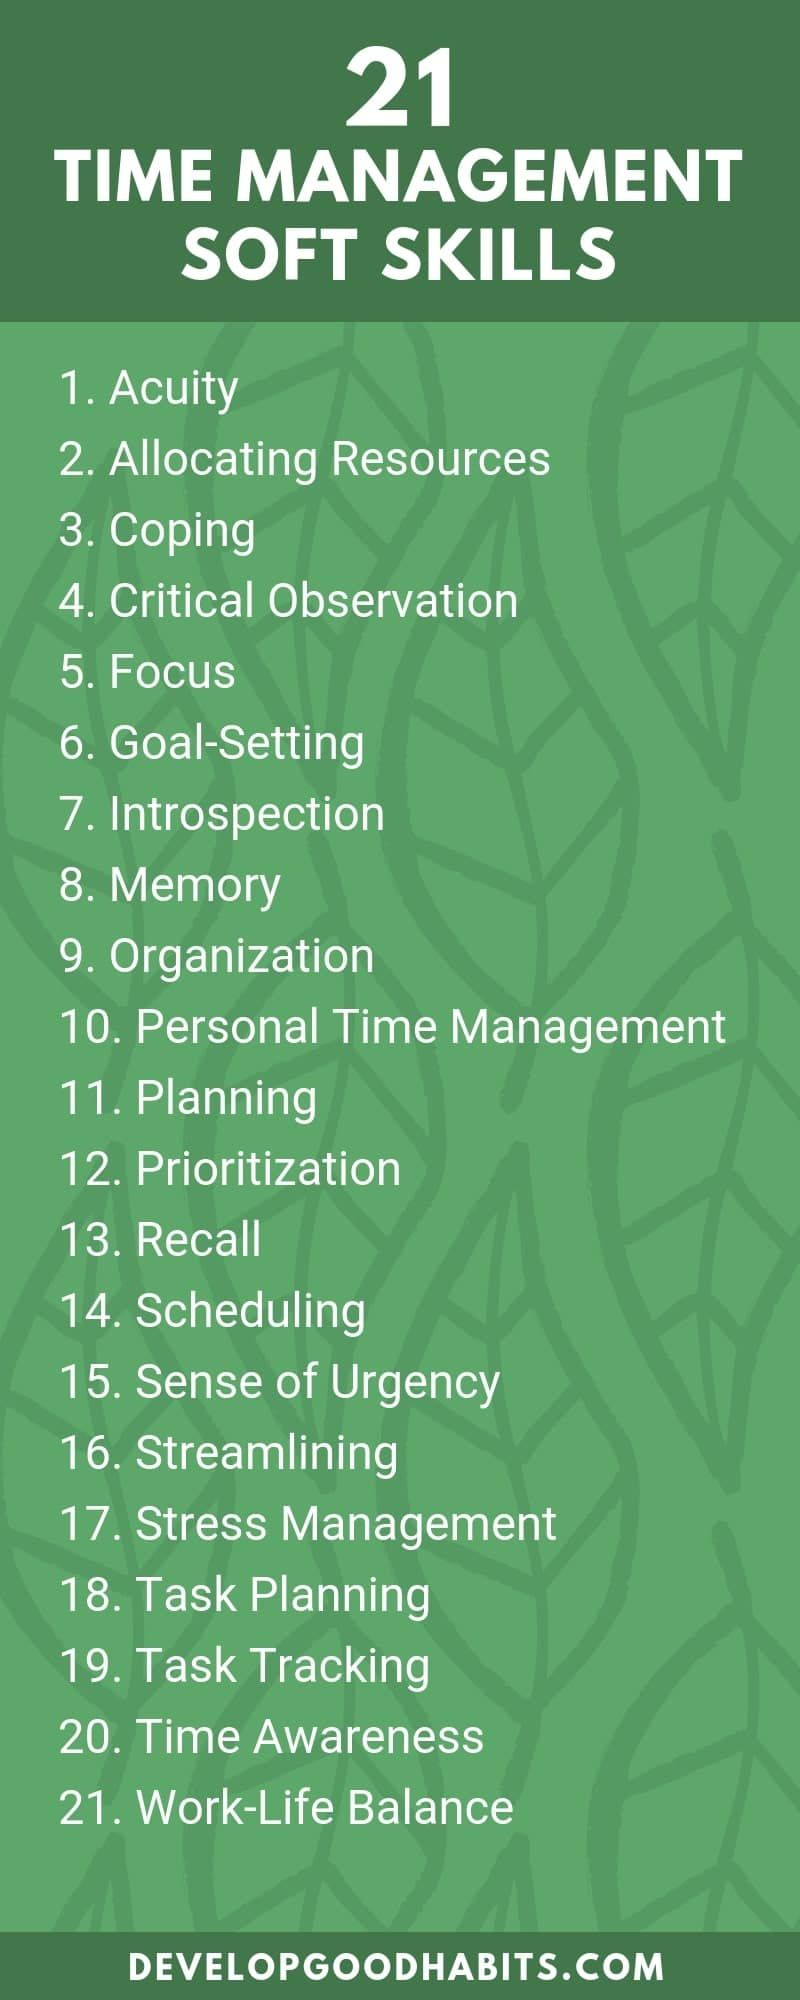 135 Soft Skills List To Stand Out On A Resume Or Job Application In 2021 Soft Skills List Of Skills Home Quotes And Sayings